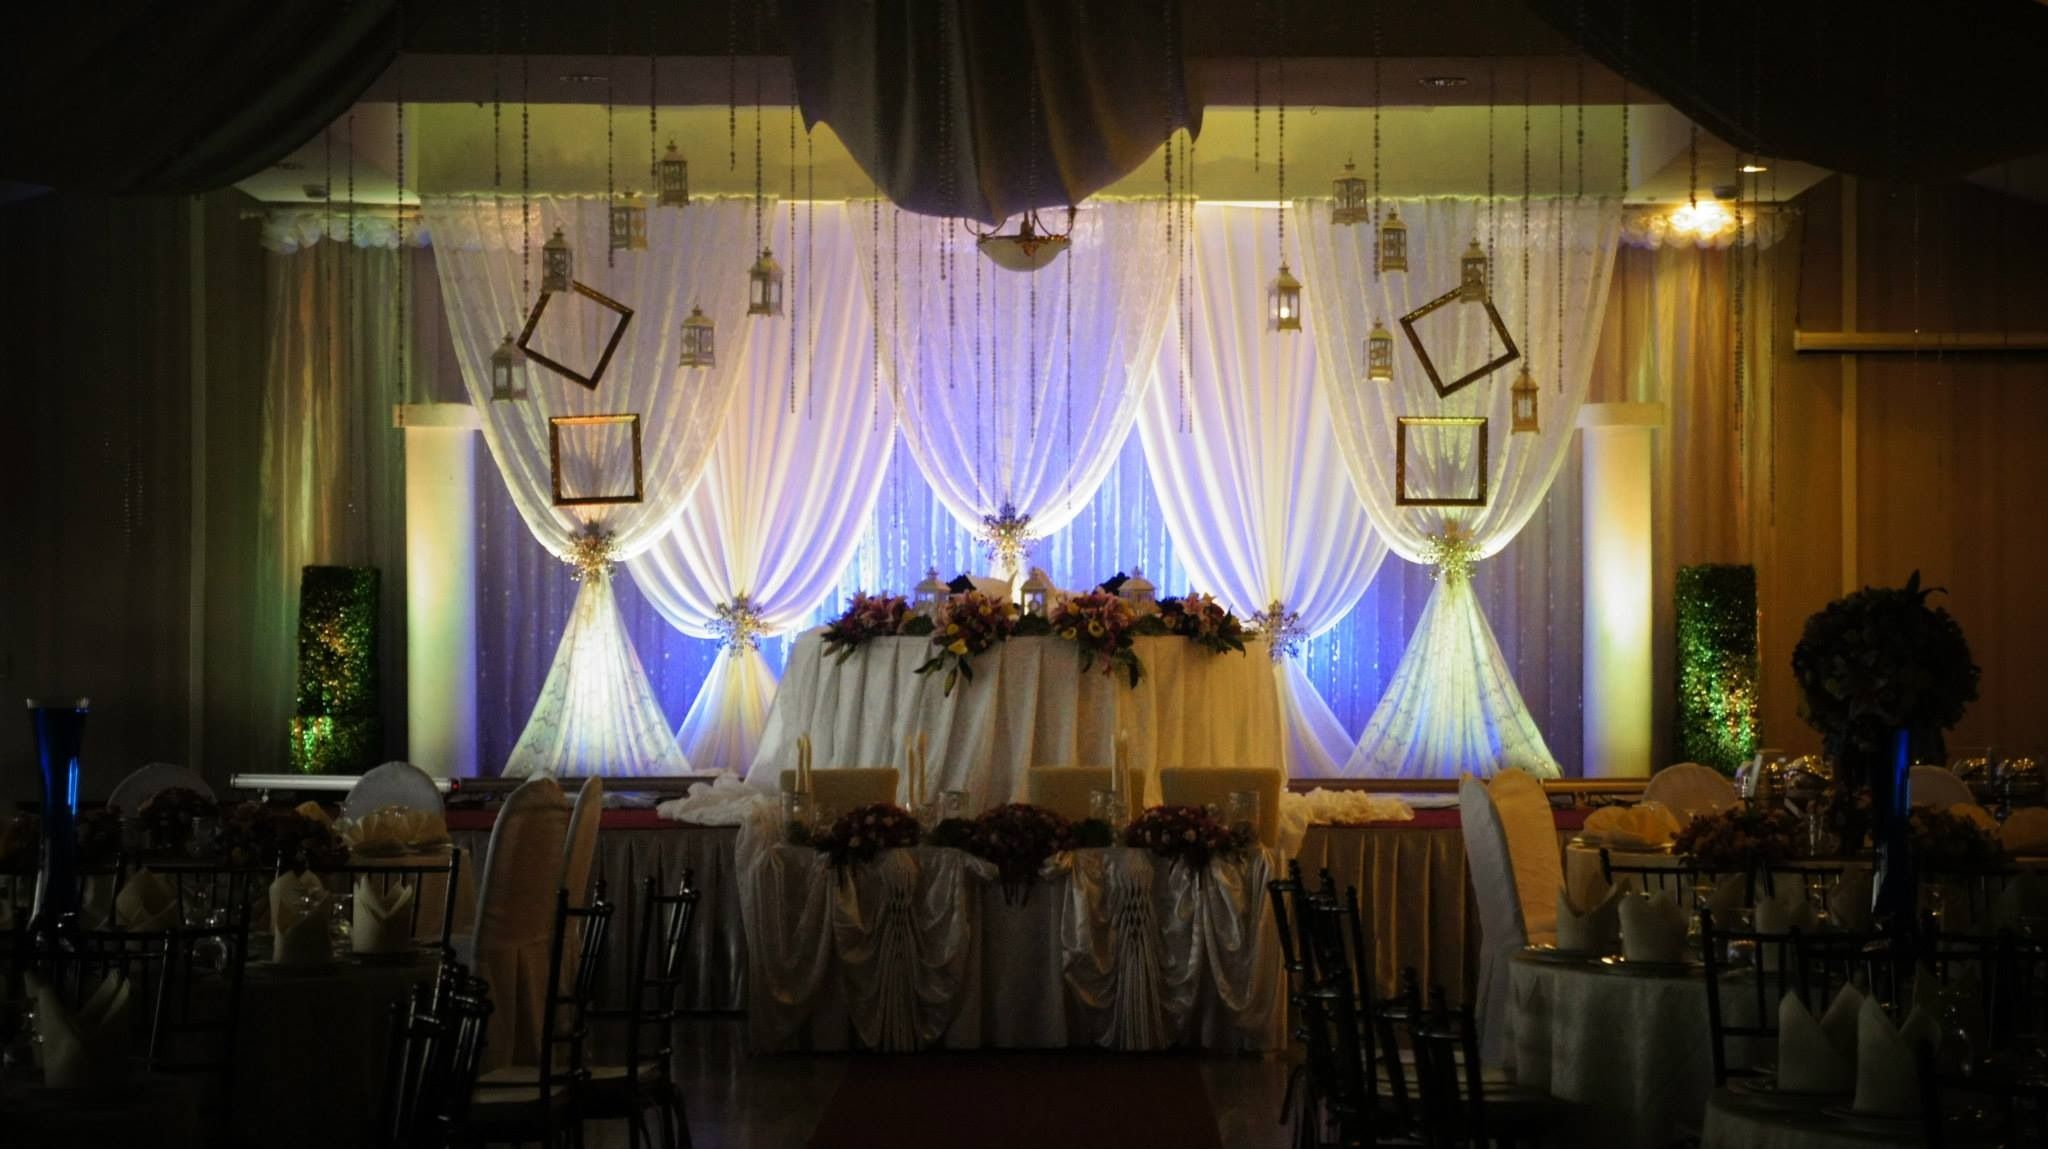 Another Beautiful Drapes Backdrop We Did For Ralph Diann Star